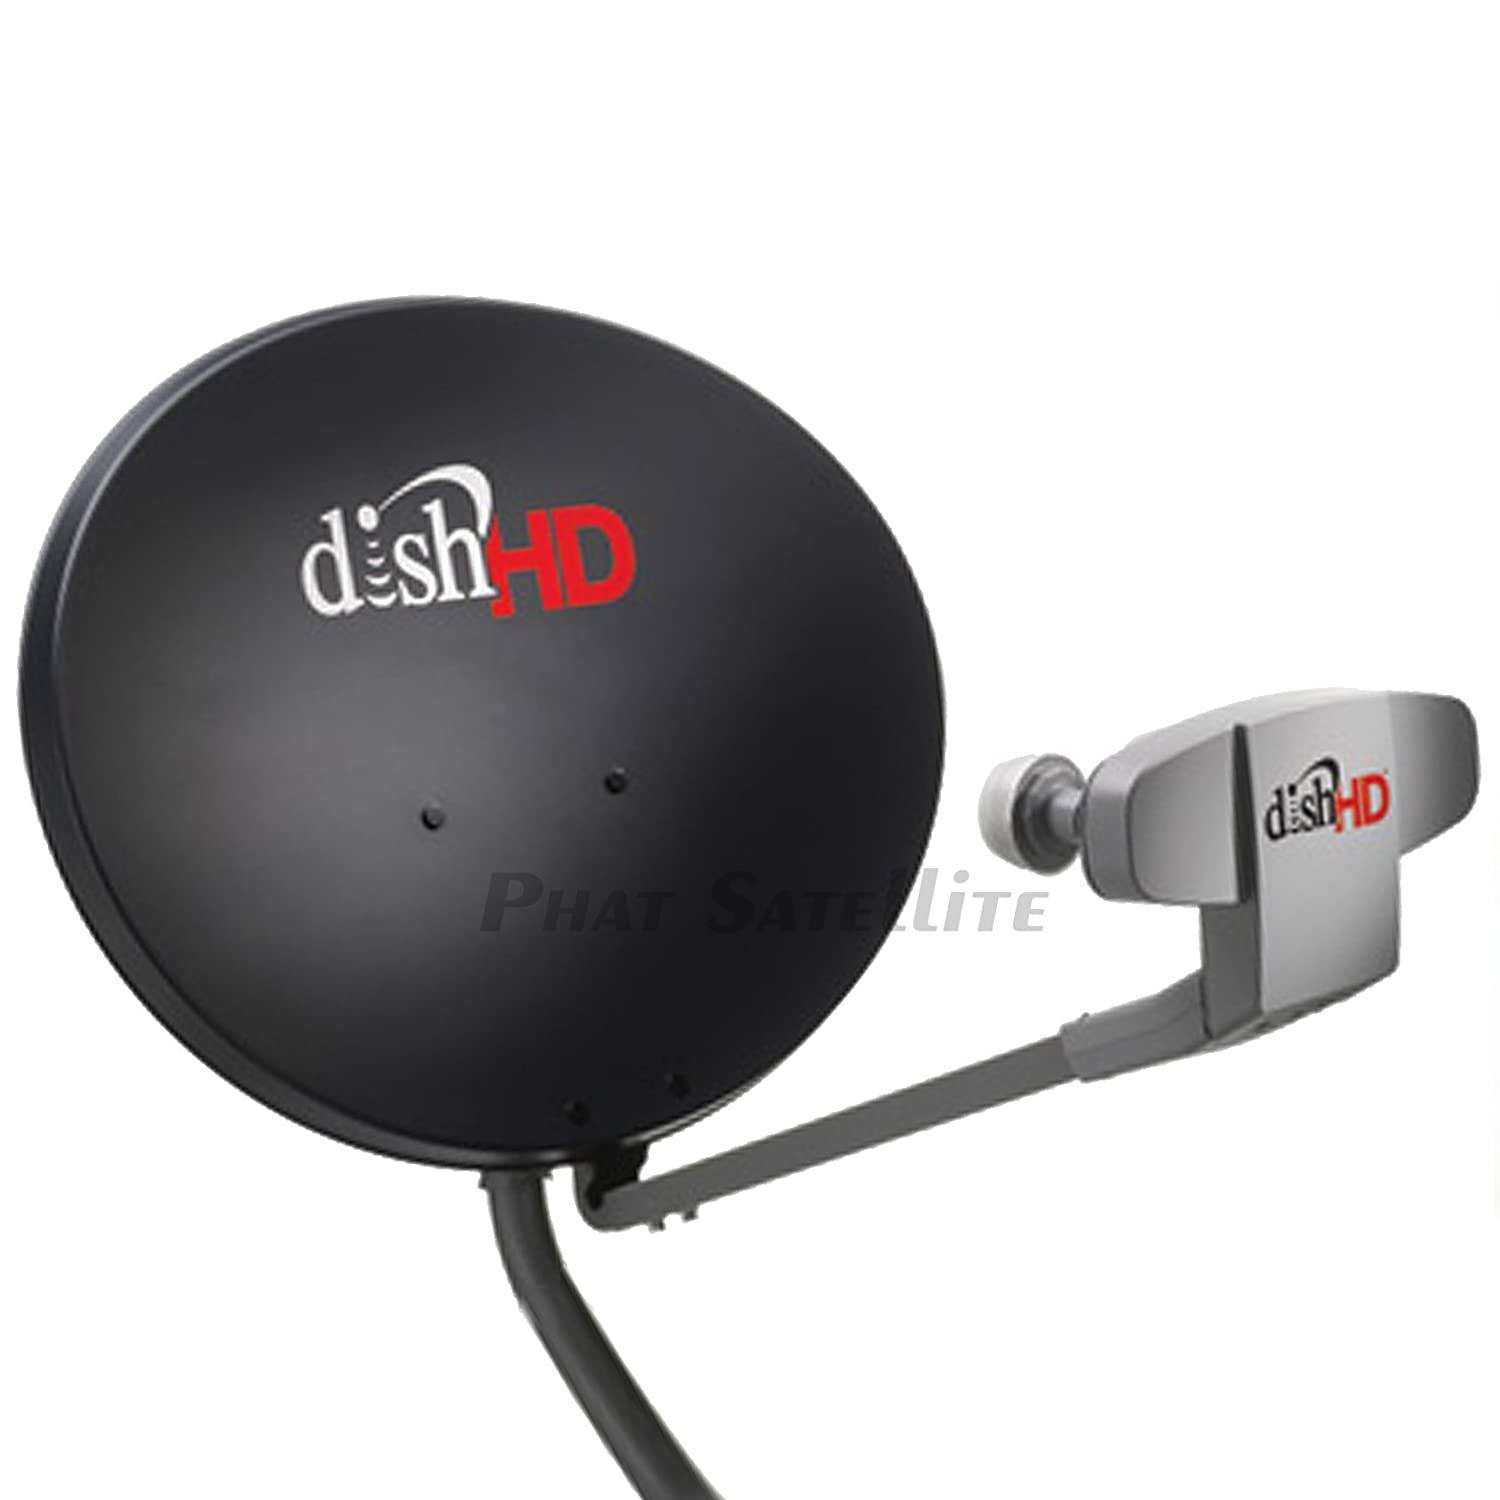 Amazon.com: Dish Network 1000.2 Dish 110, 119, 129 Satellites High ...